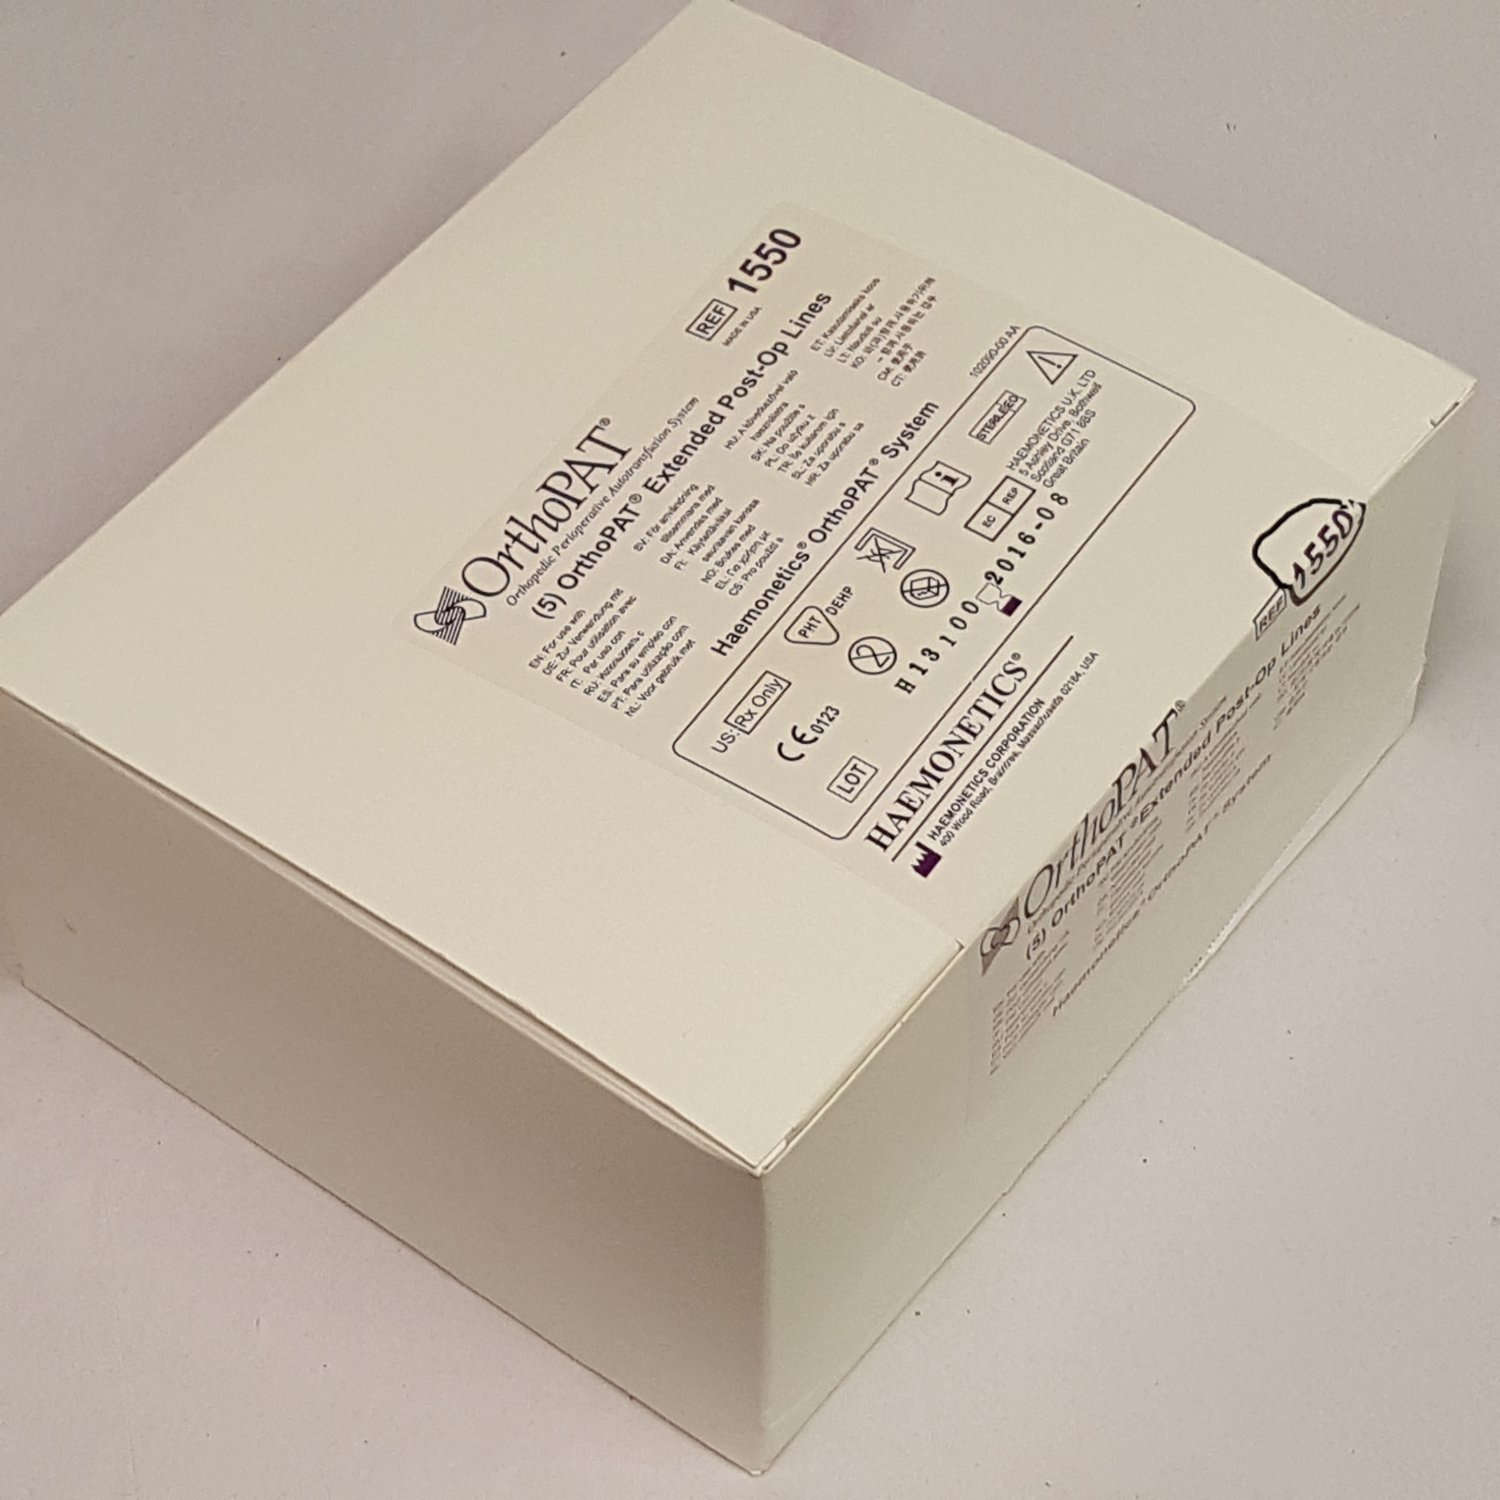 Box of 5 / OrthoPAT 1550 Extended Post-Op Lines